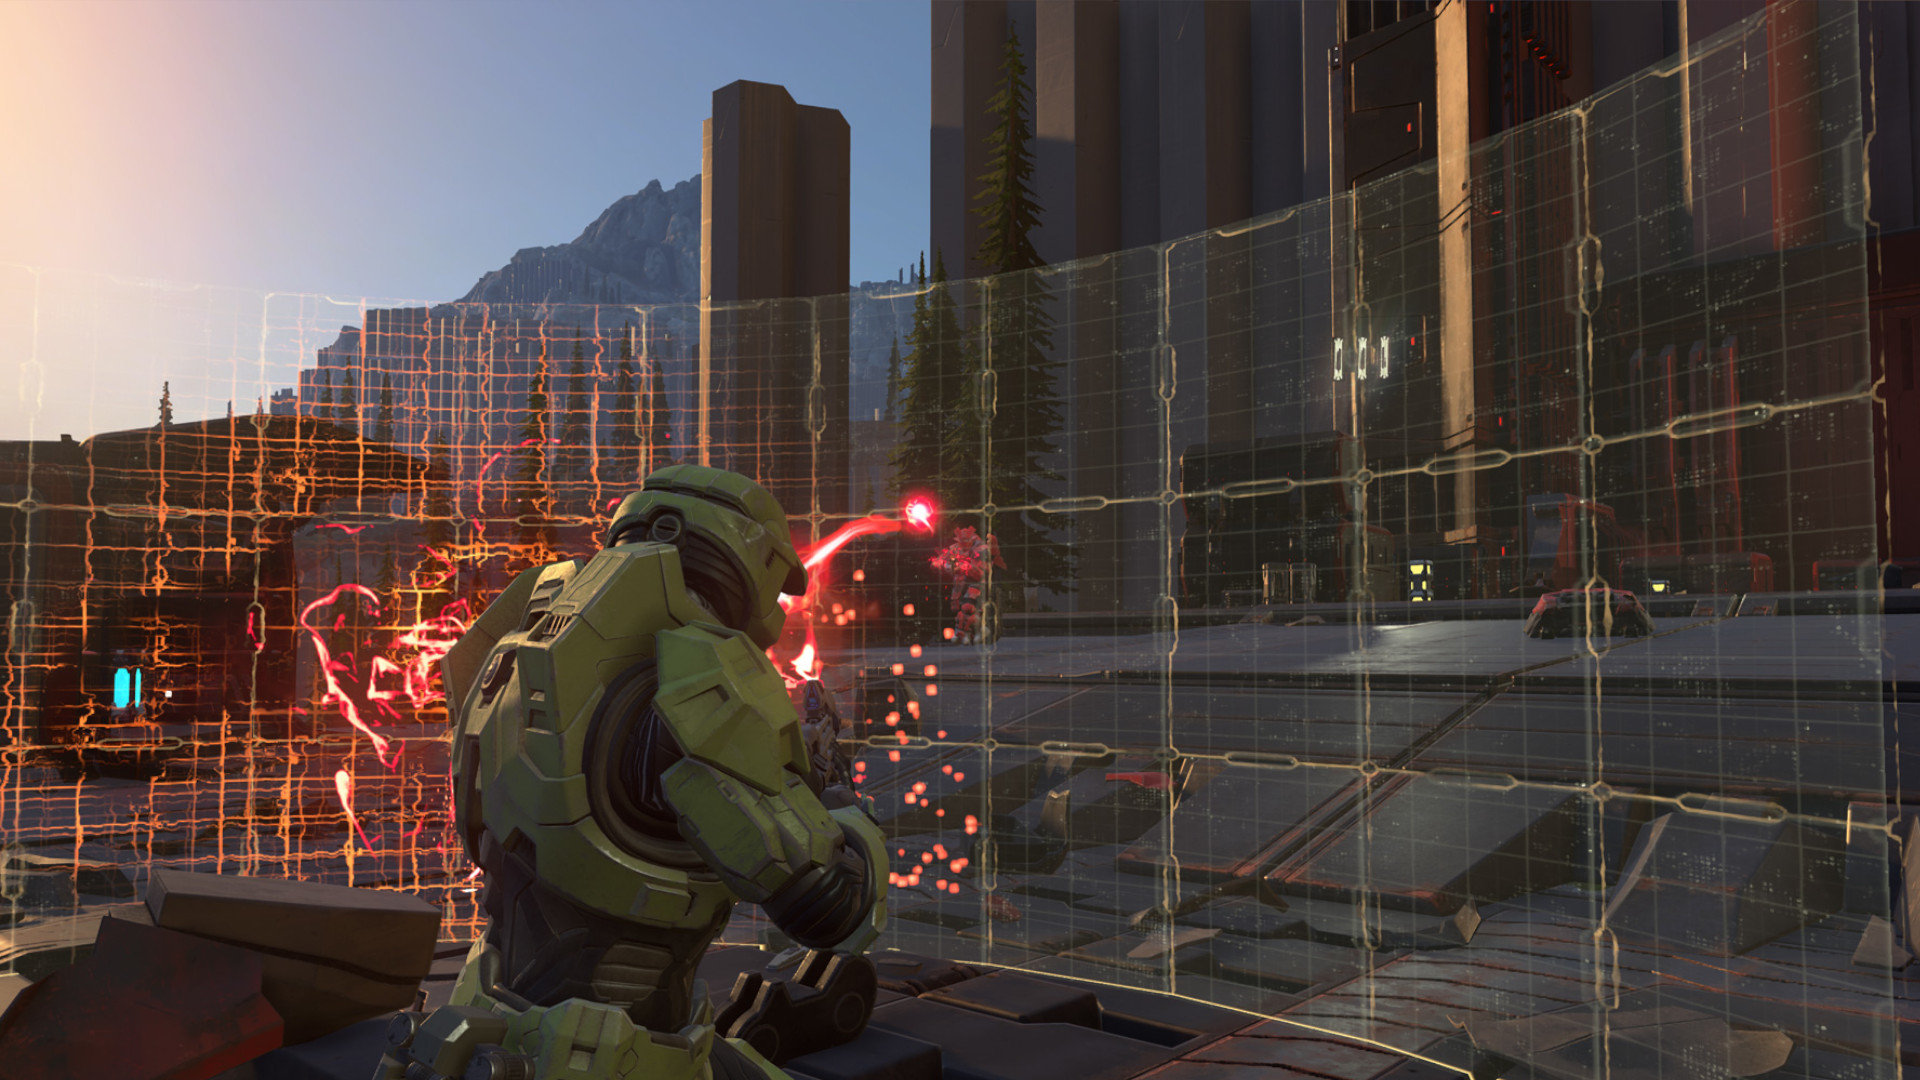 The Master Chief running into a semi-translucent wall in Halo Infinite.